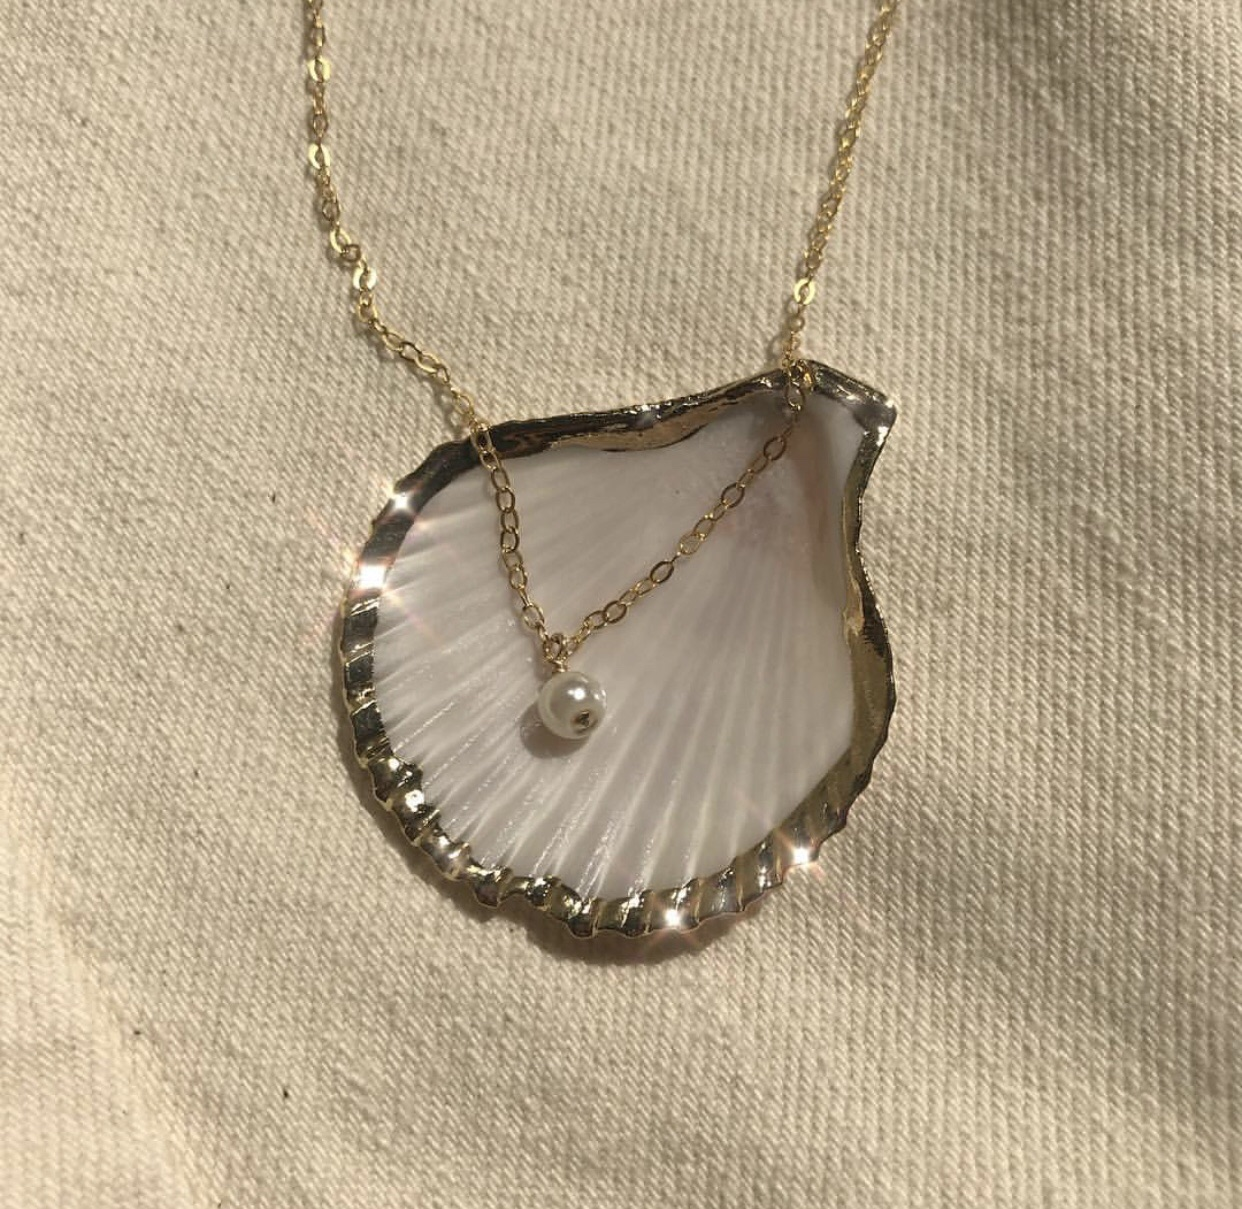 Tumblr Seashell Necklace And Accessory Image 6334757 On Favim Com